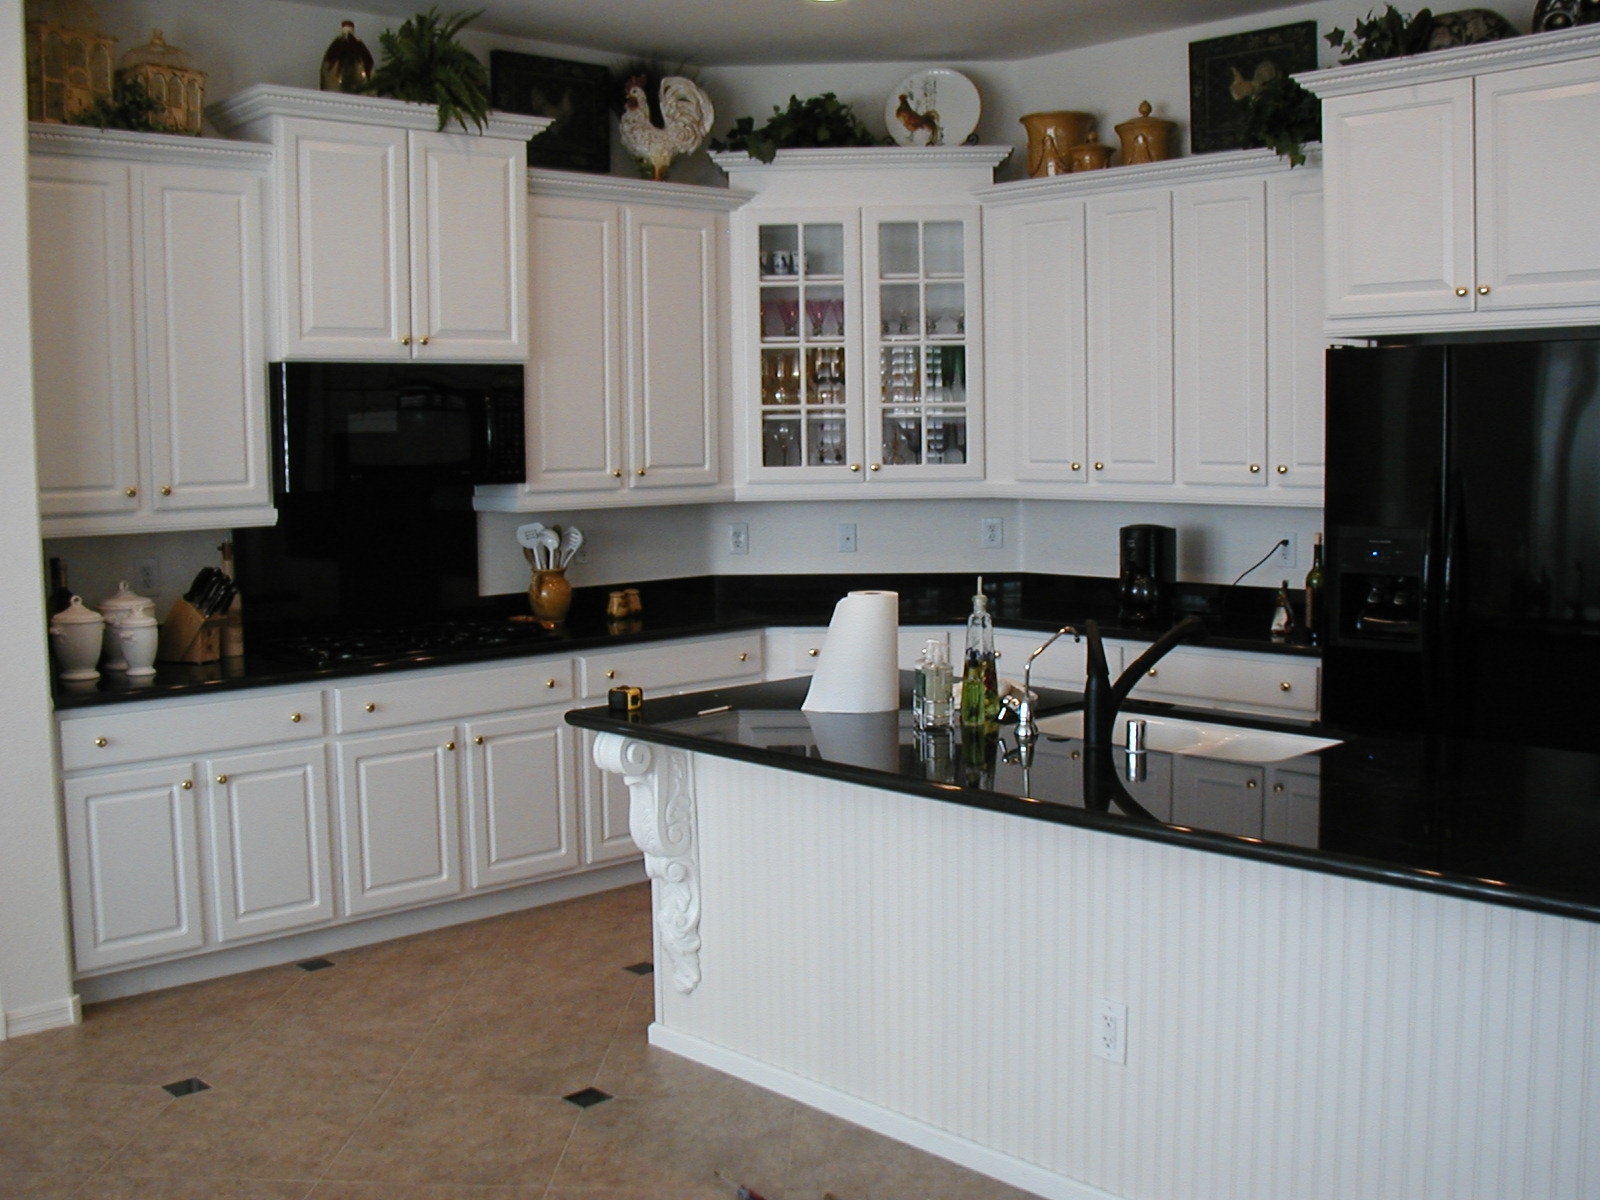 Hmh designs white kitchen cabinets timeless and transcendent Kitchens with black appliances